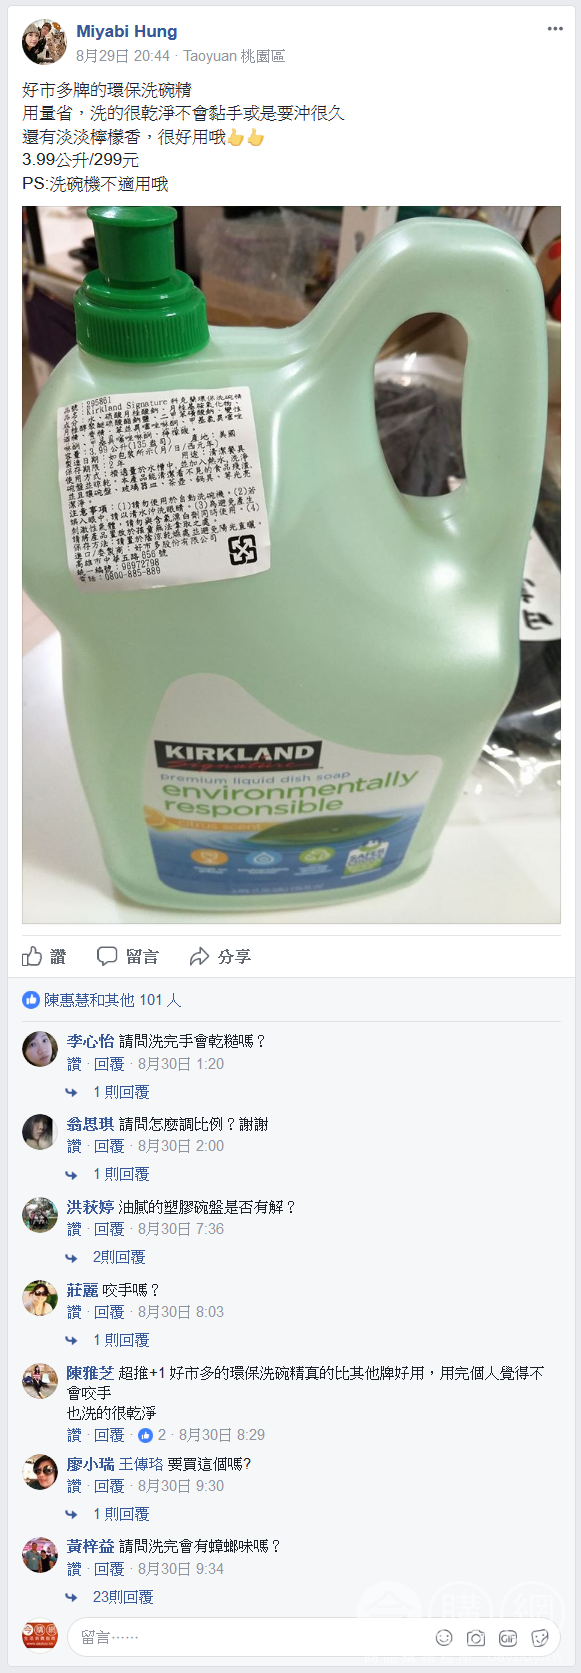 Costco_comment-0036.png